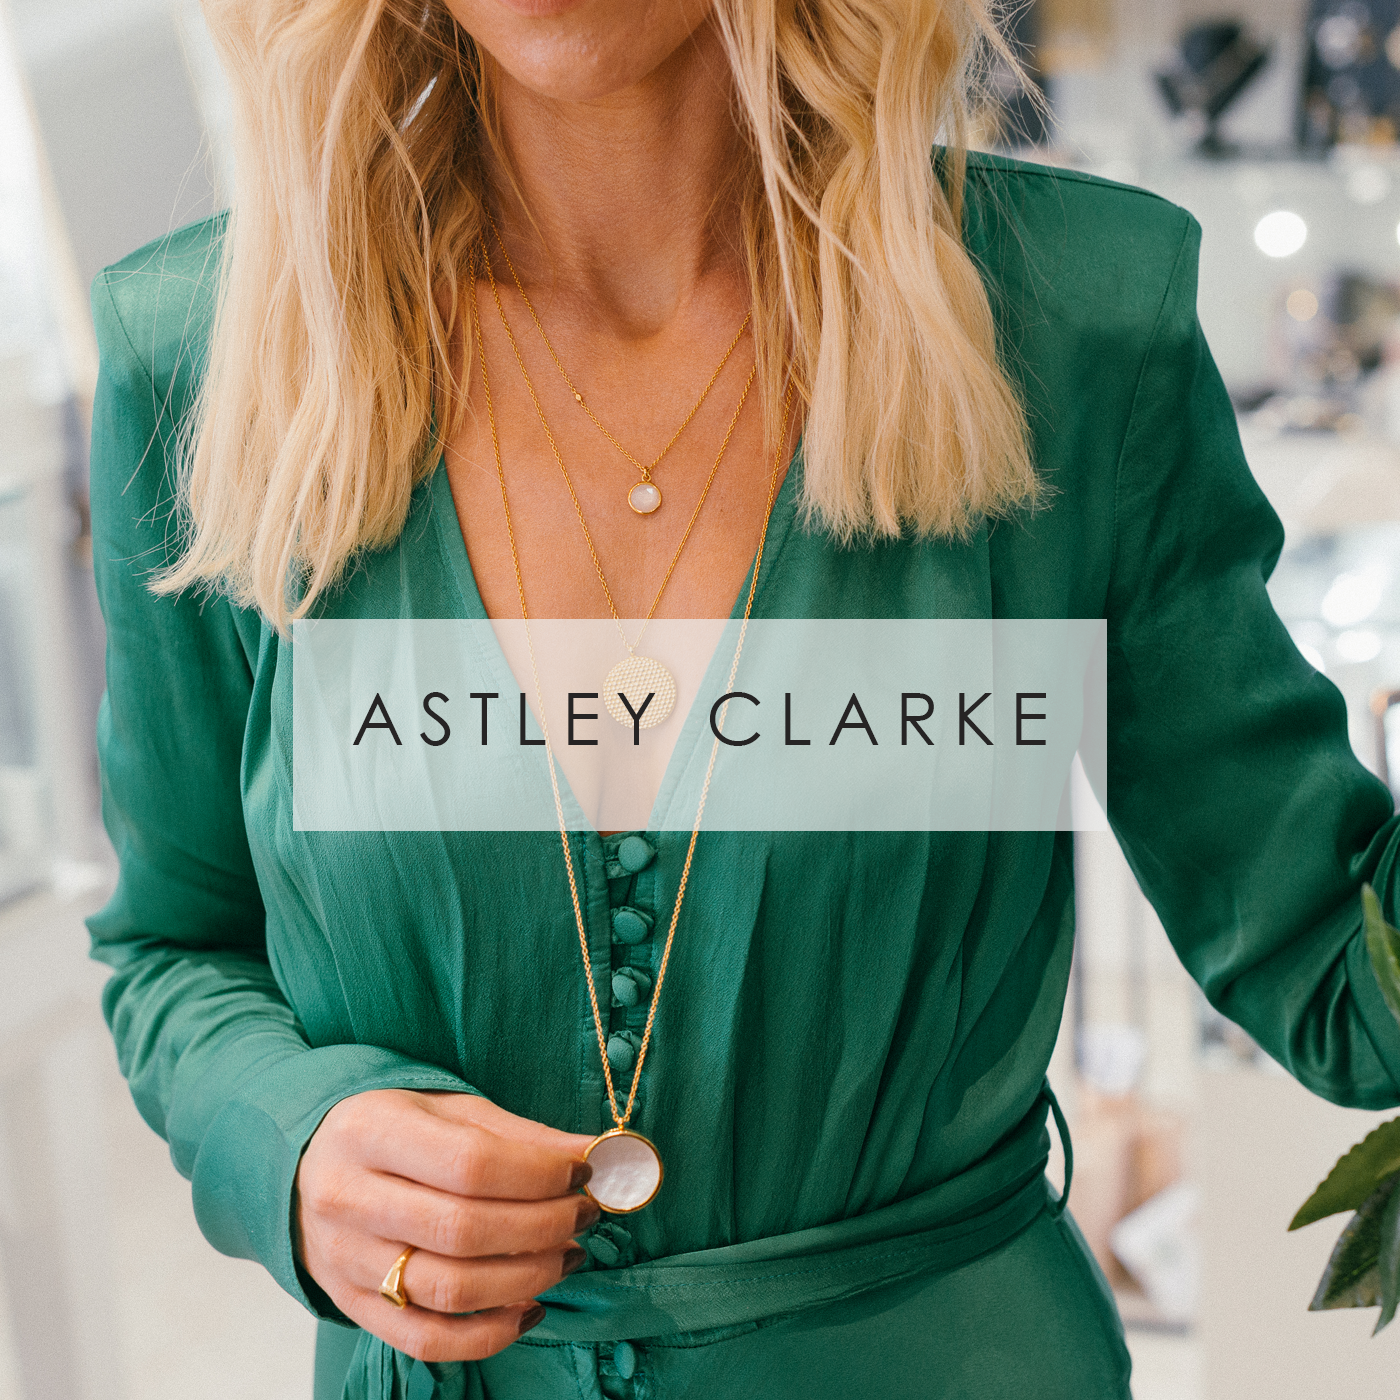 Astley Clarke Nottingham Jewellery stockist